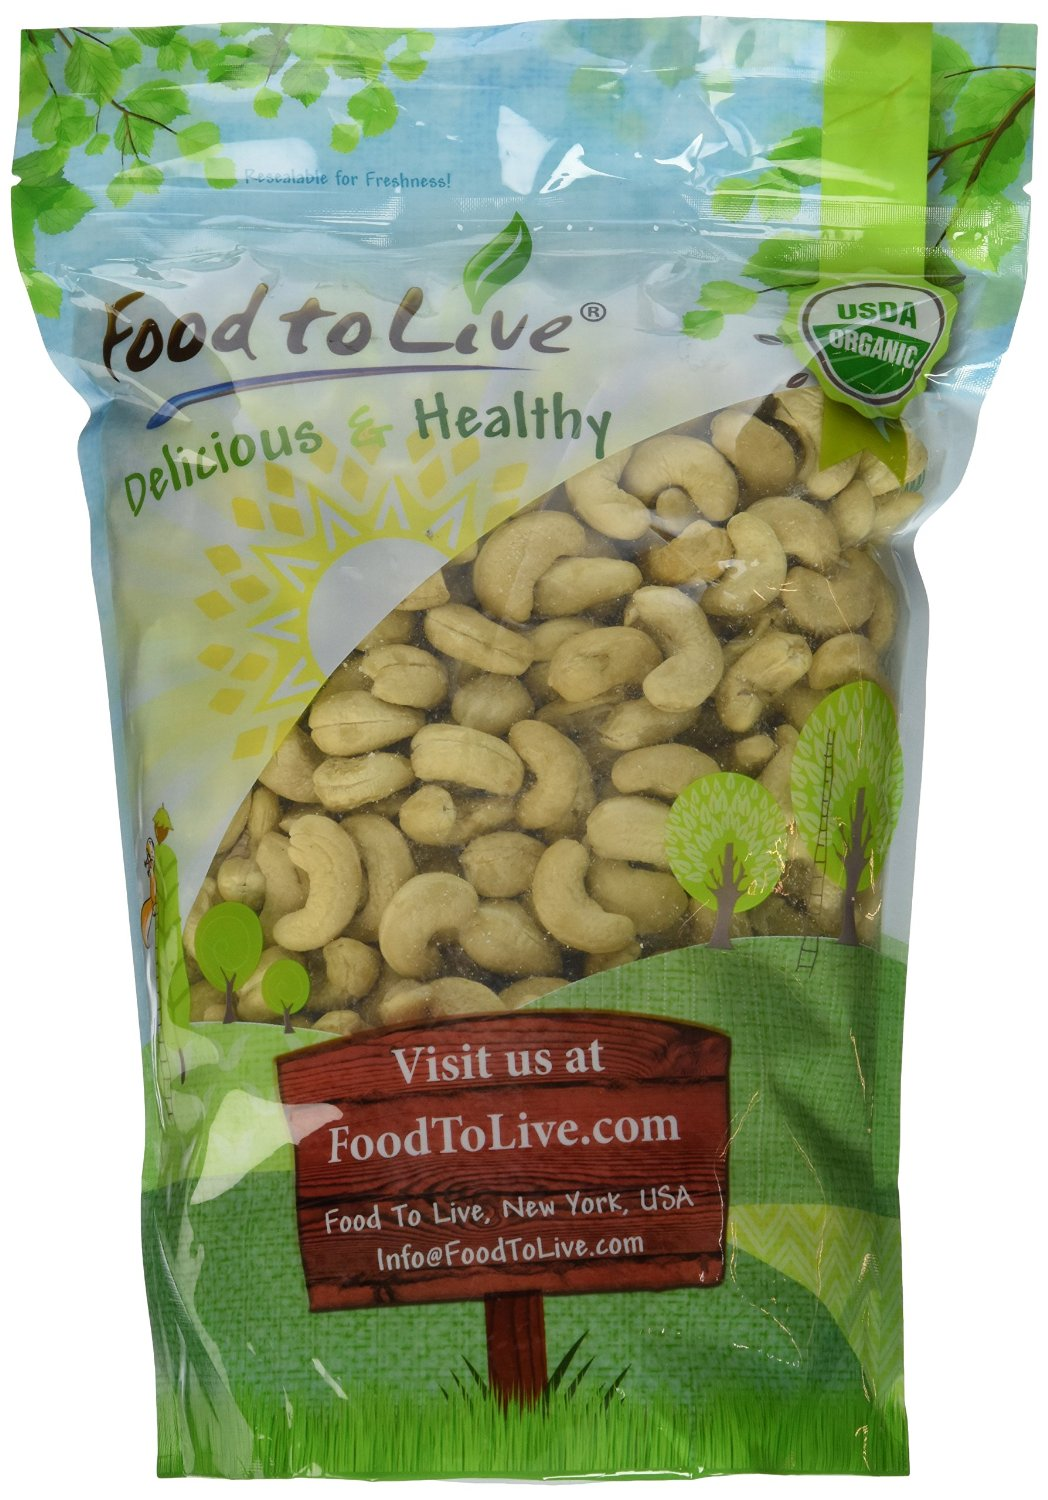 Food To Live Organic Cashews (Whole, Raw) (2 Pounds) by Food To Live